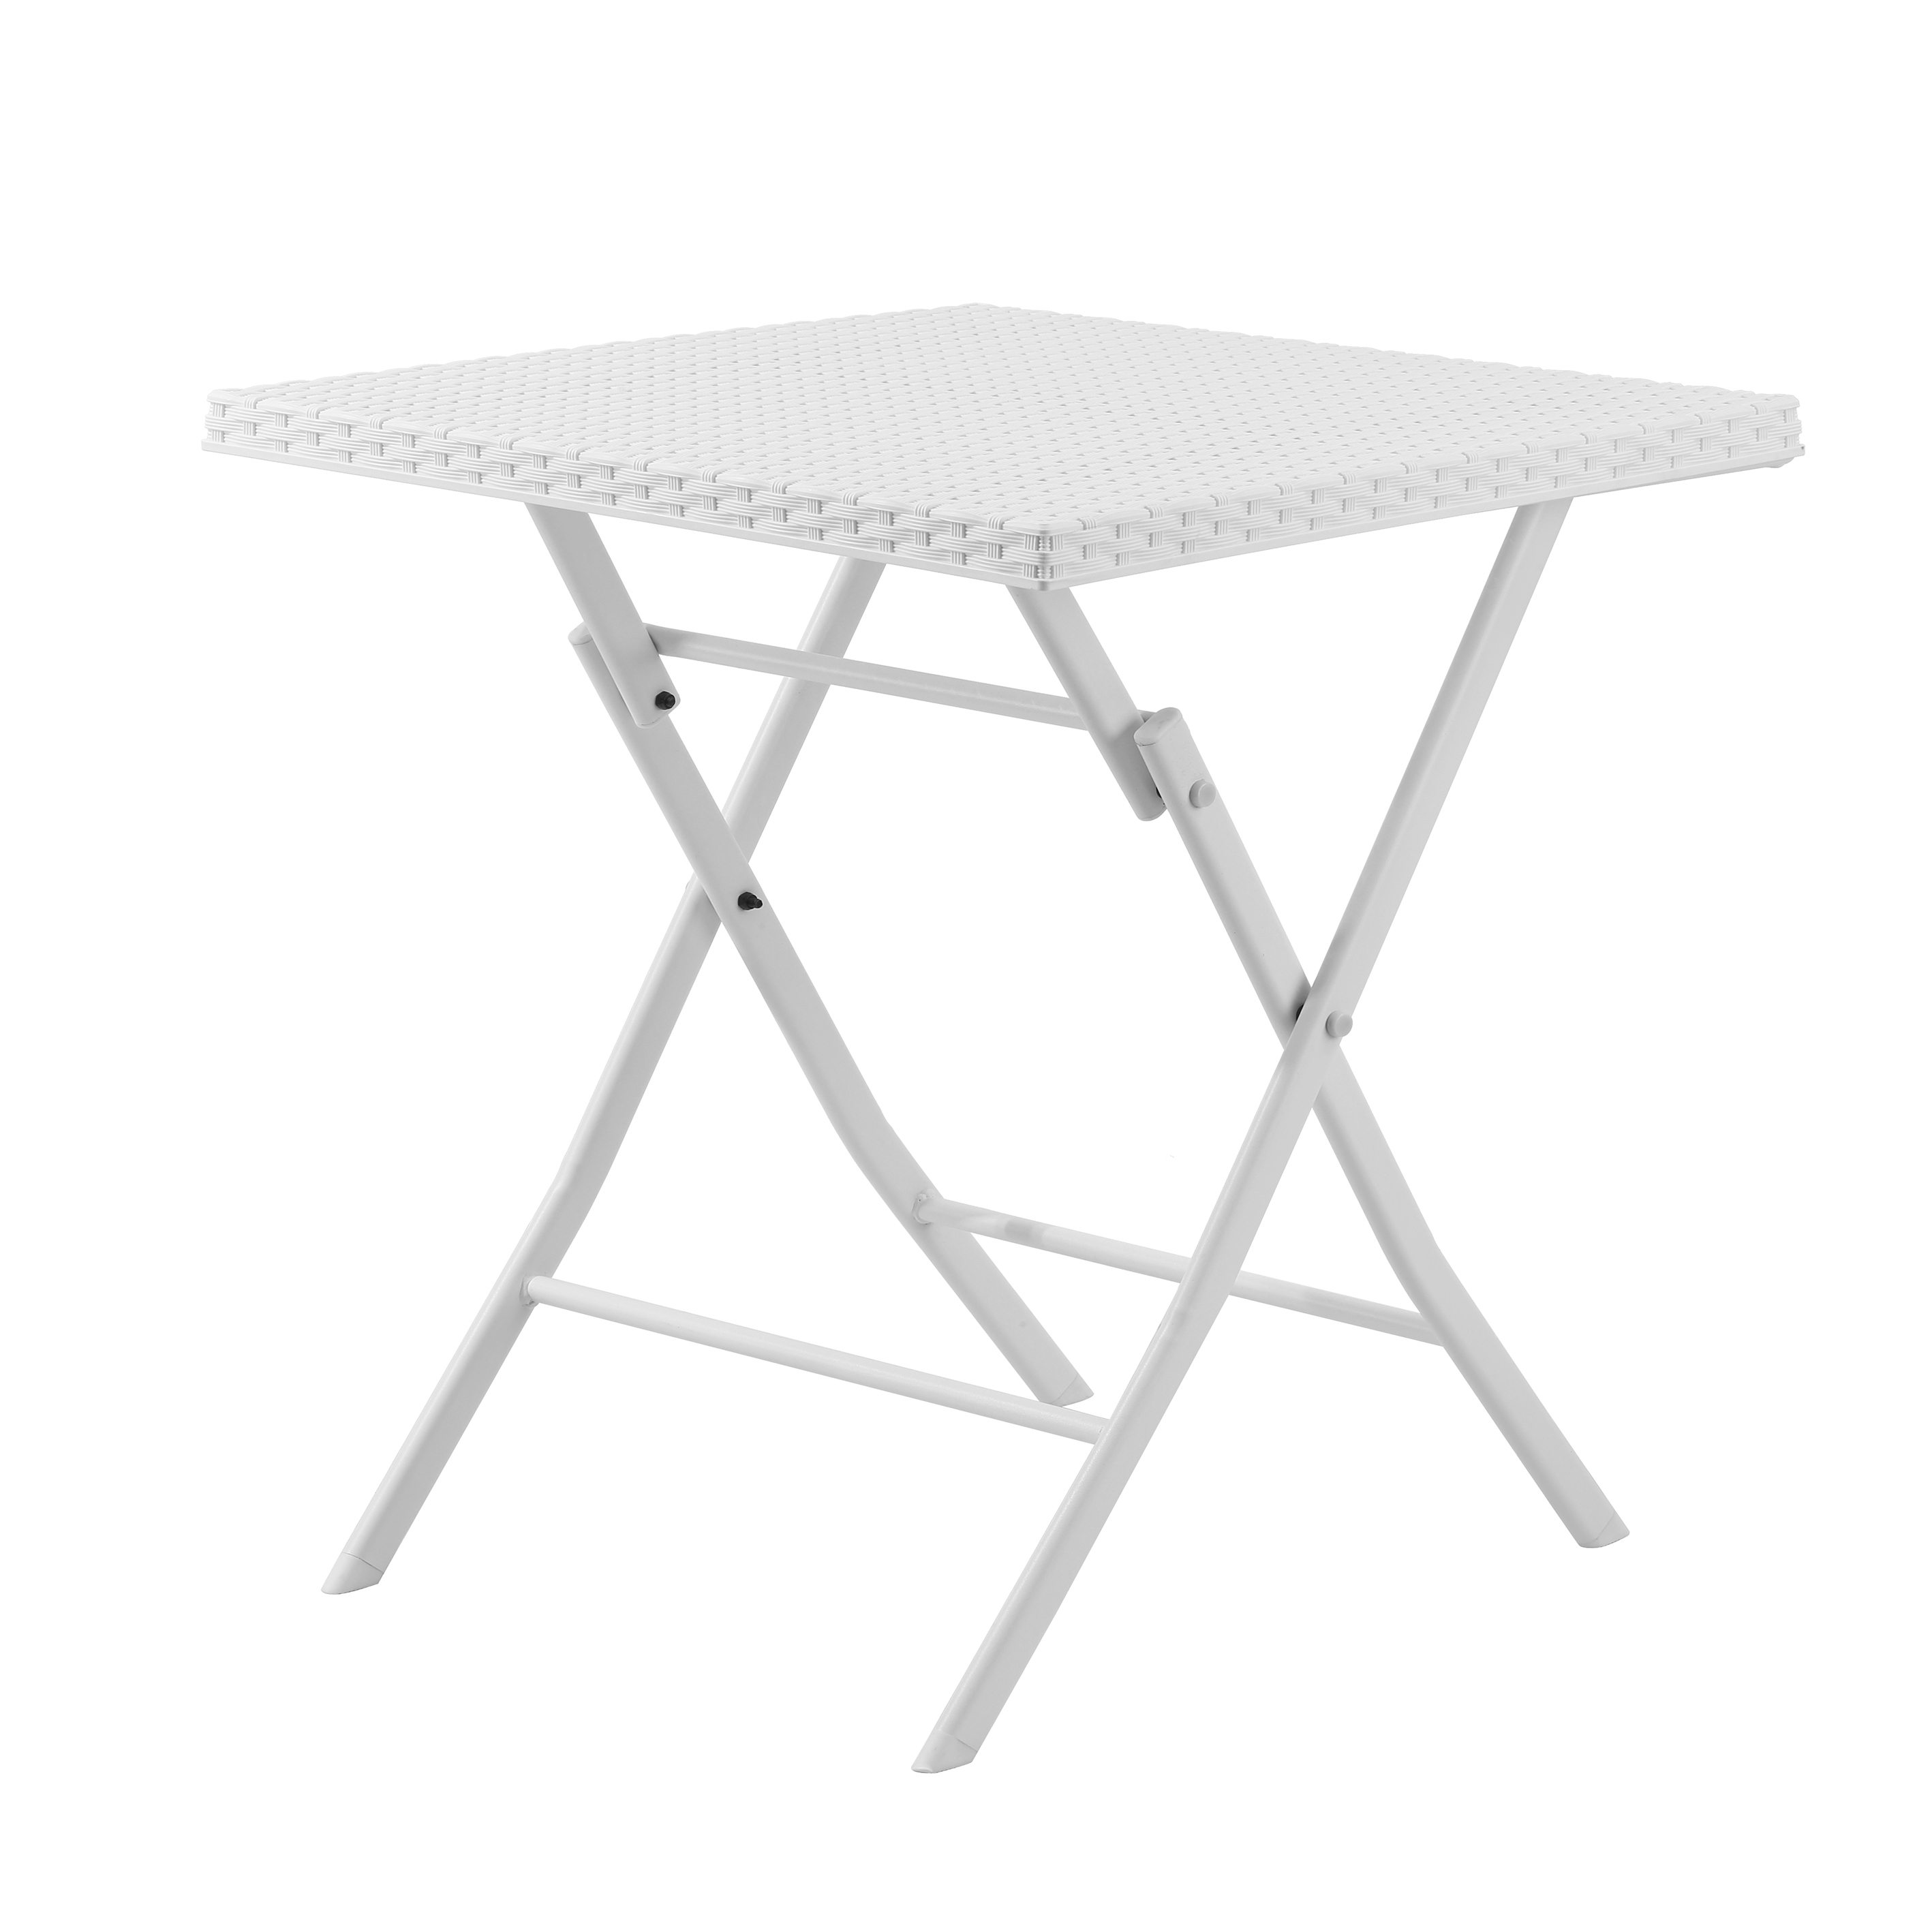 Folding Furniture Plastic Table